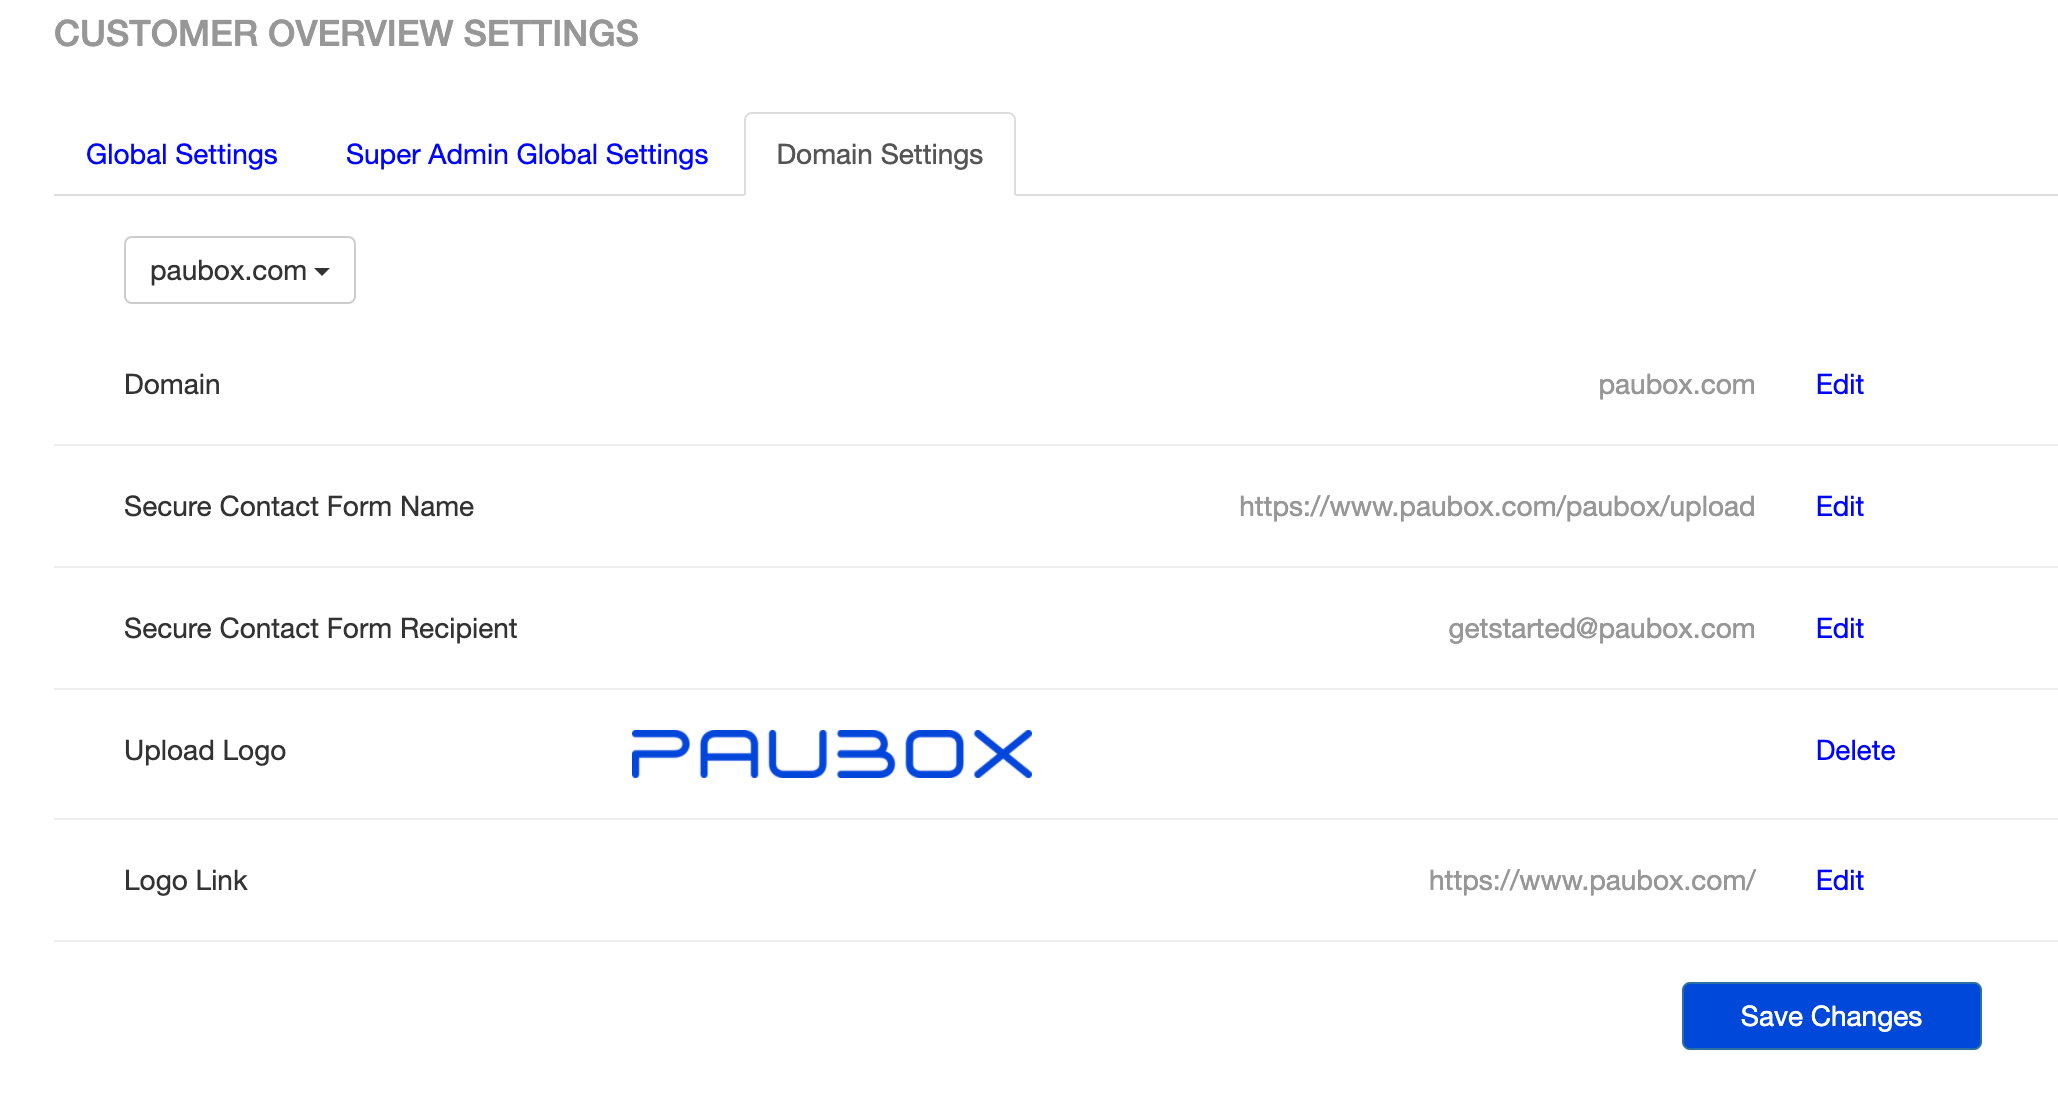 How to Use a Secure Contact Form with Paubox